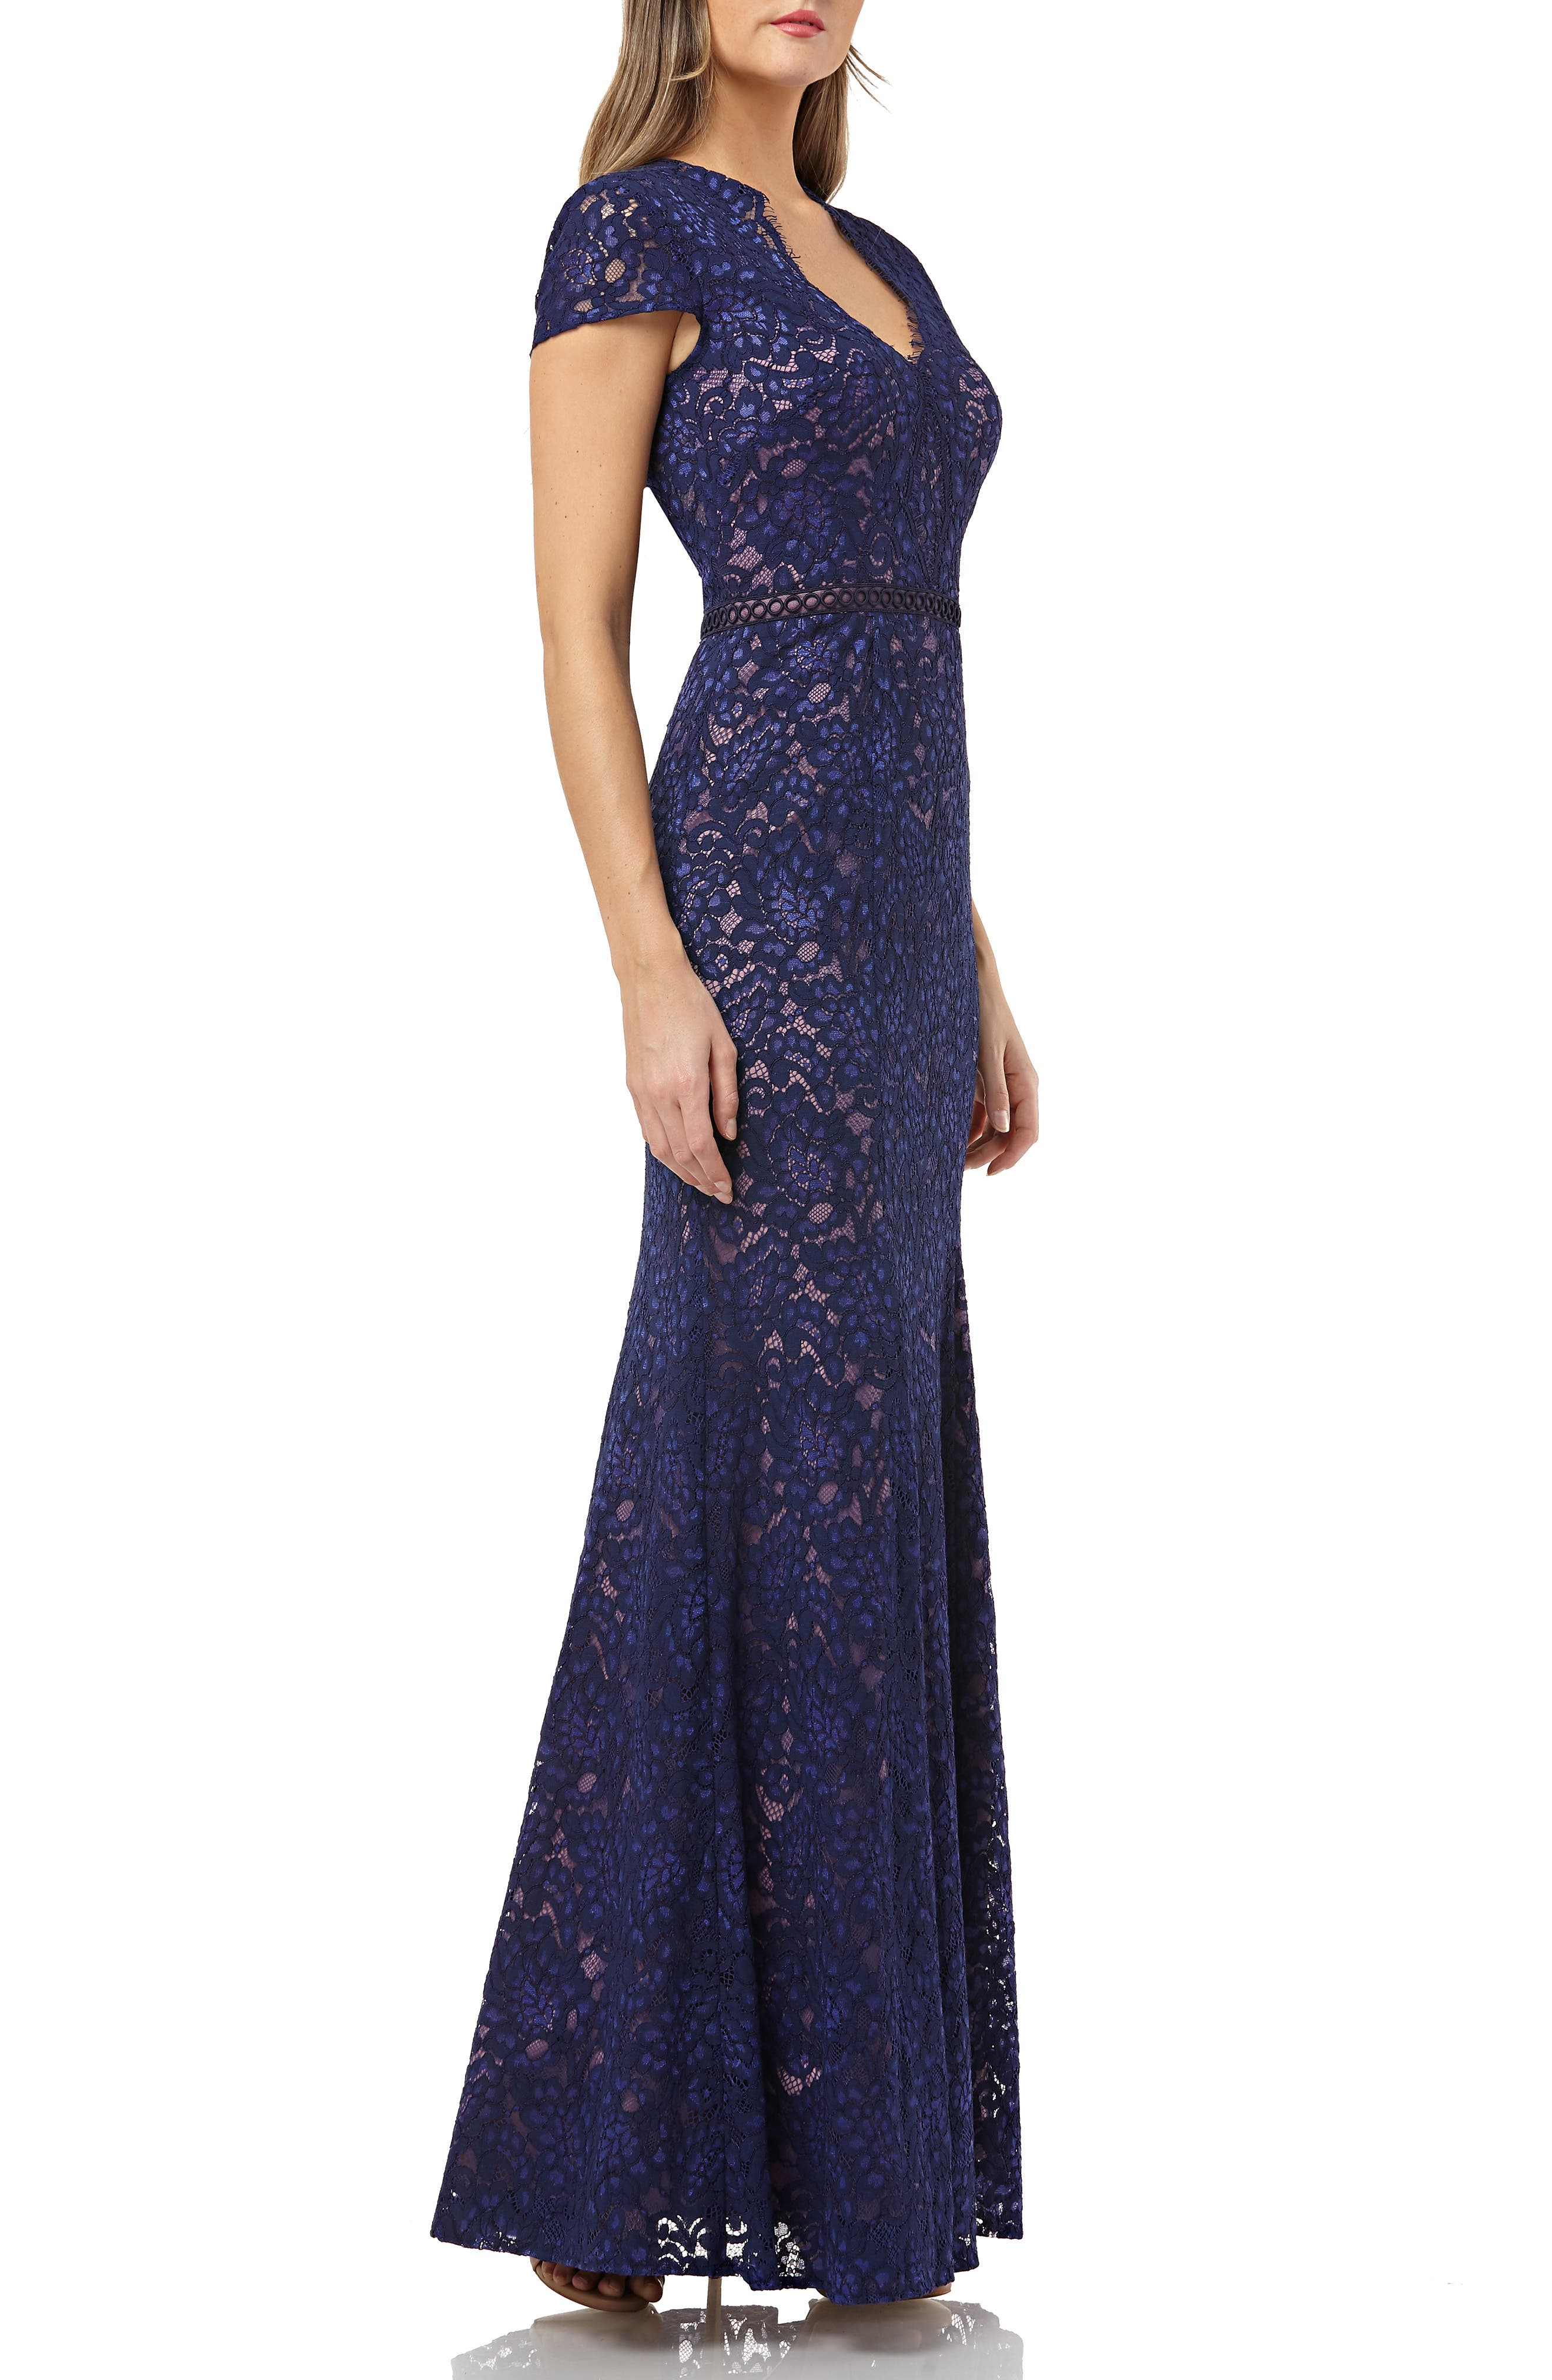 JS COLLECTIONS, Lace Mermaid Gown, Alternate thumbnail 4, color, NAVY/ ROSE